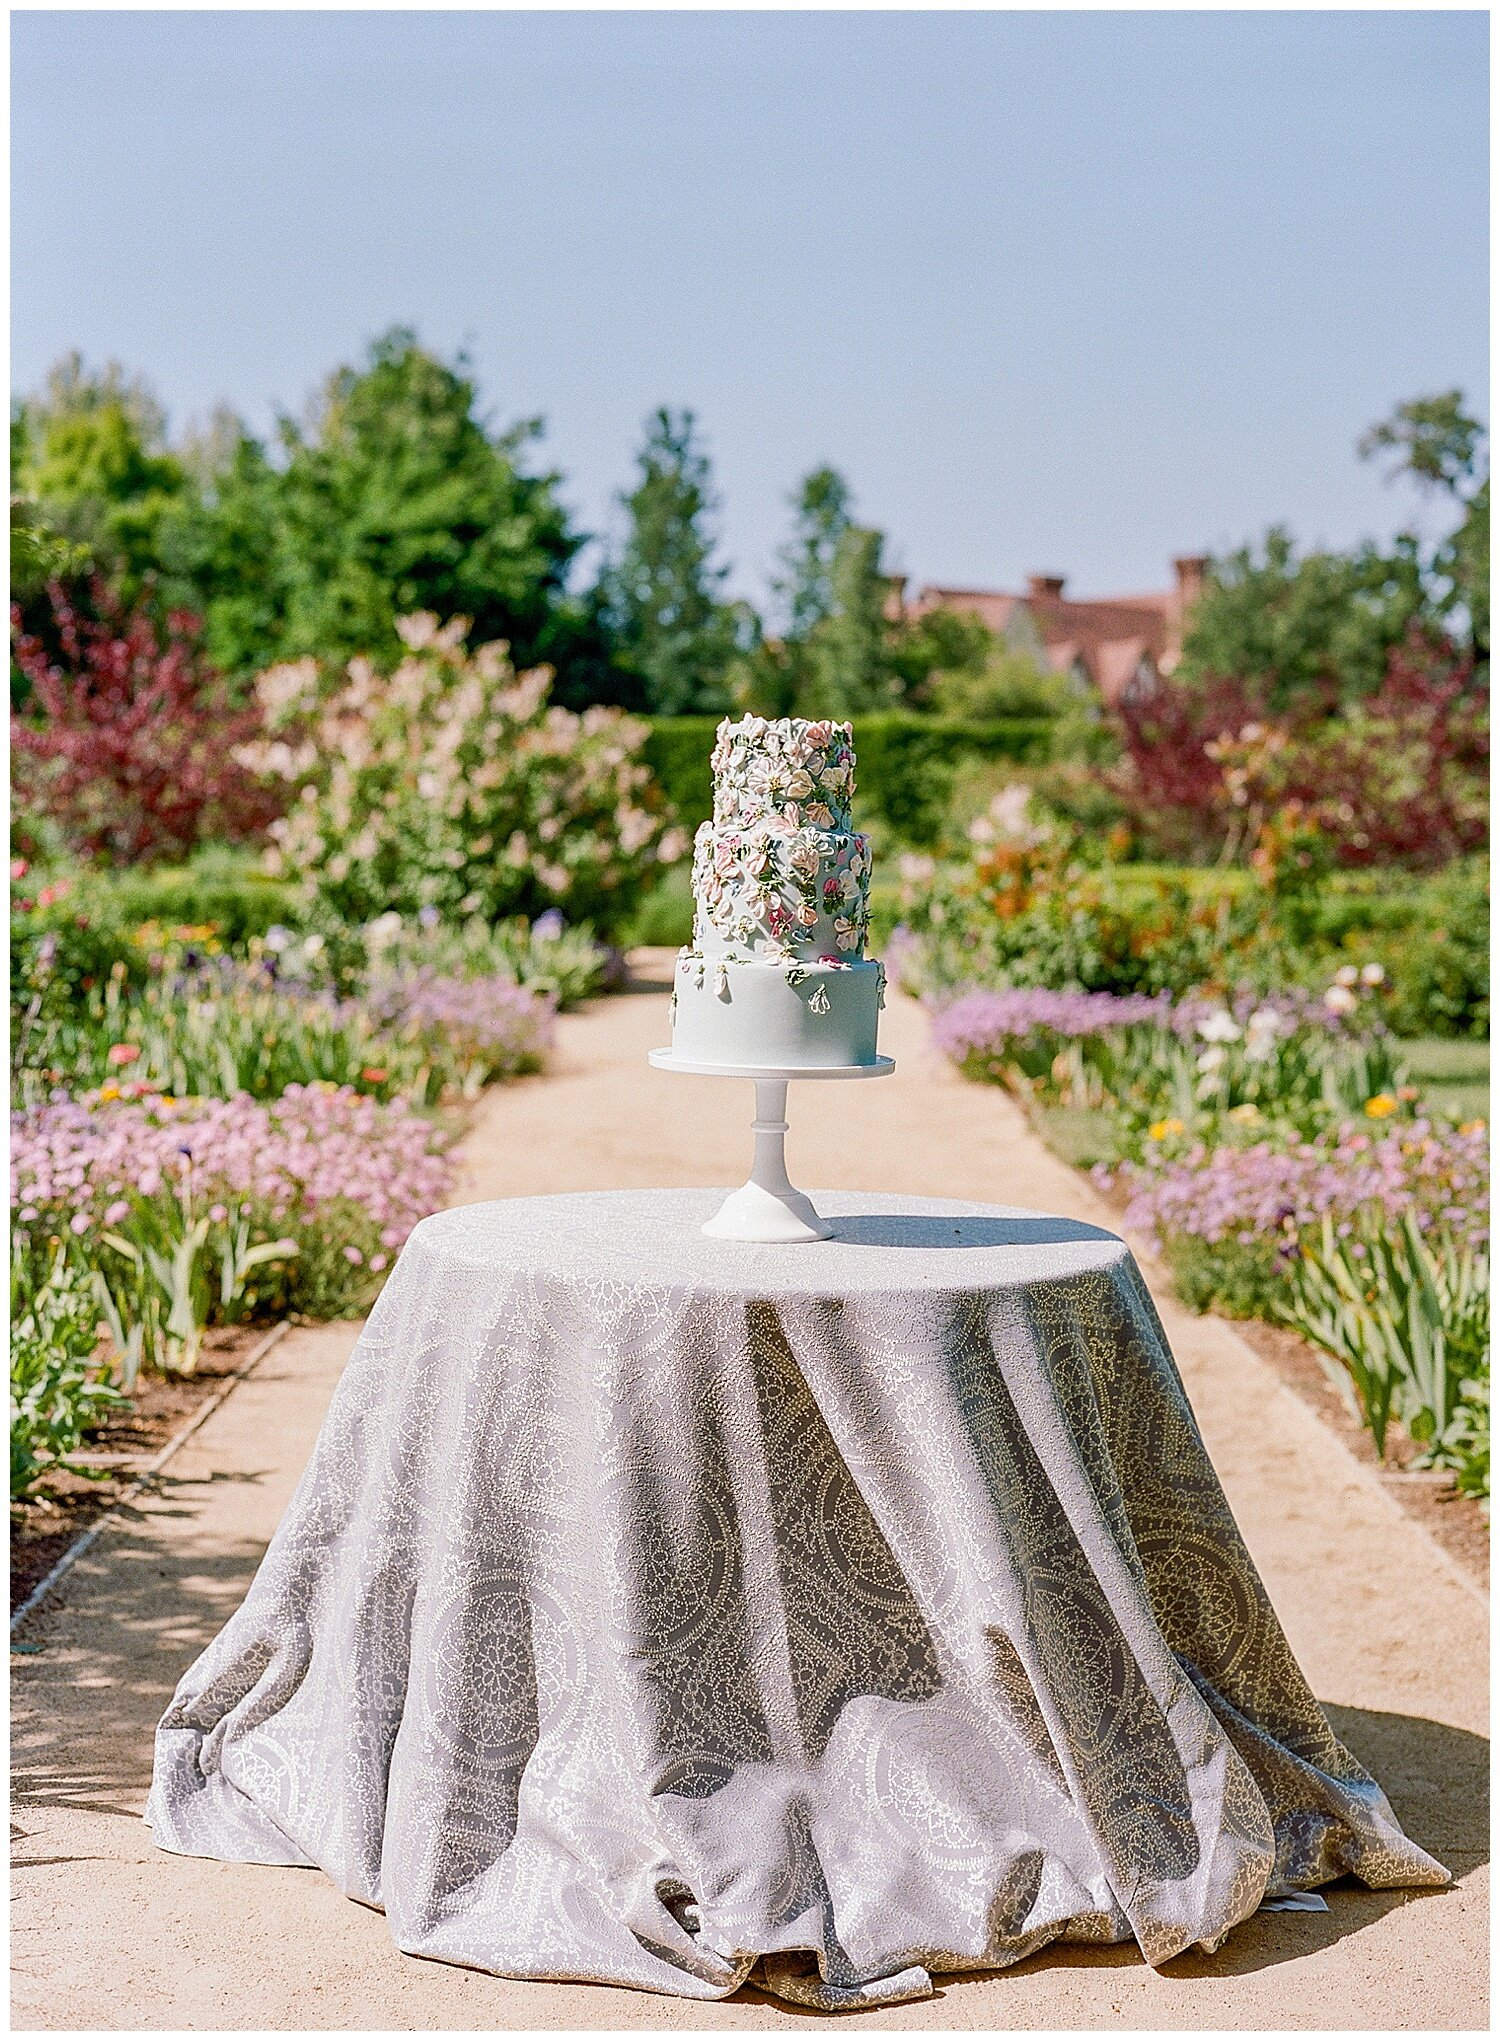 Janine_Licare_Photography_San_Francisco_Kestrel_Park_Santa_Ynez_Sunstone_Villa_Winer_Wedding_Photographer_Meadowood_Napa_Valley_Sonoma_0053.jpg